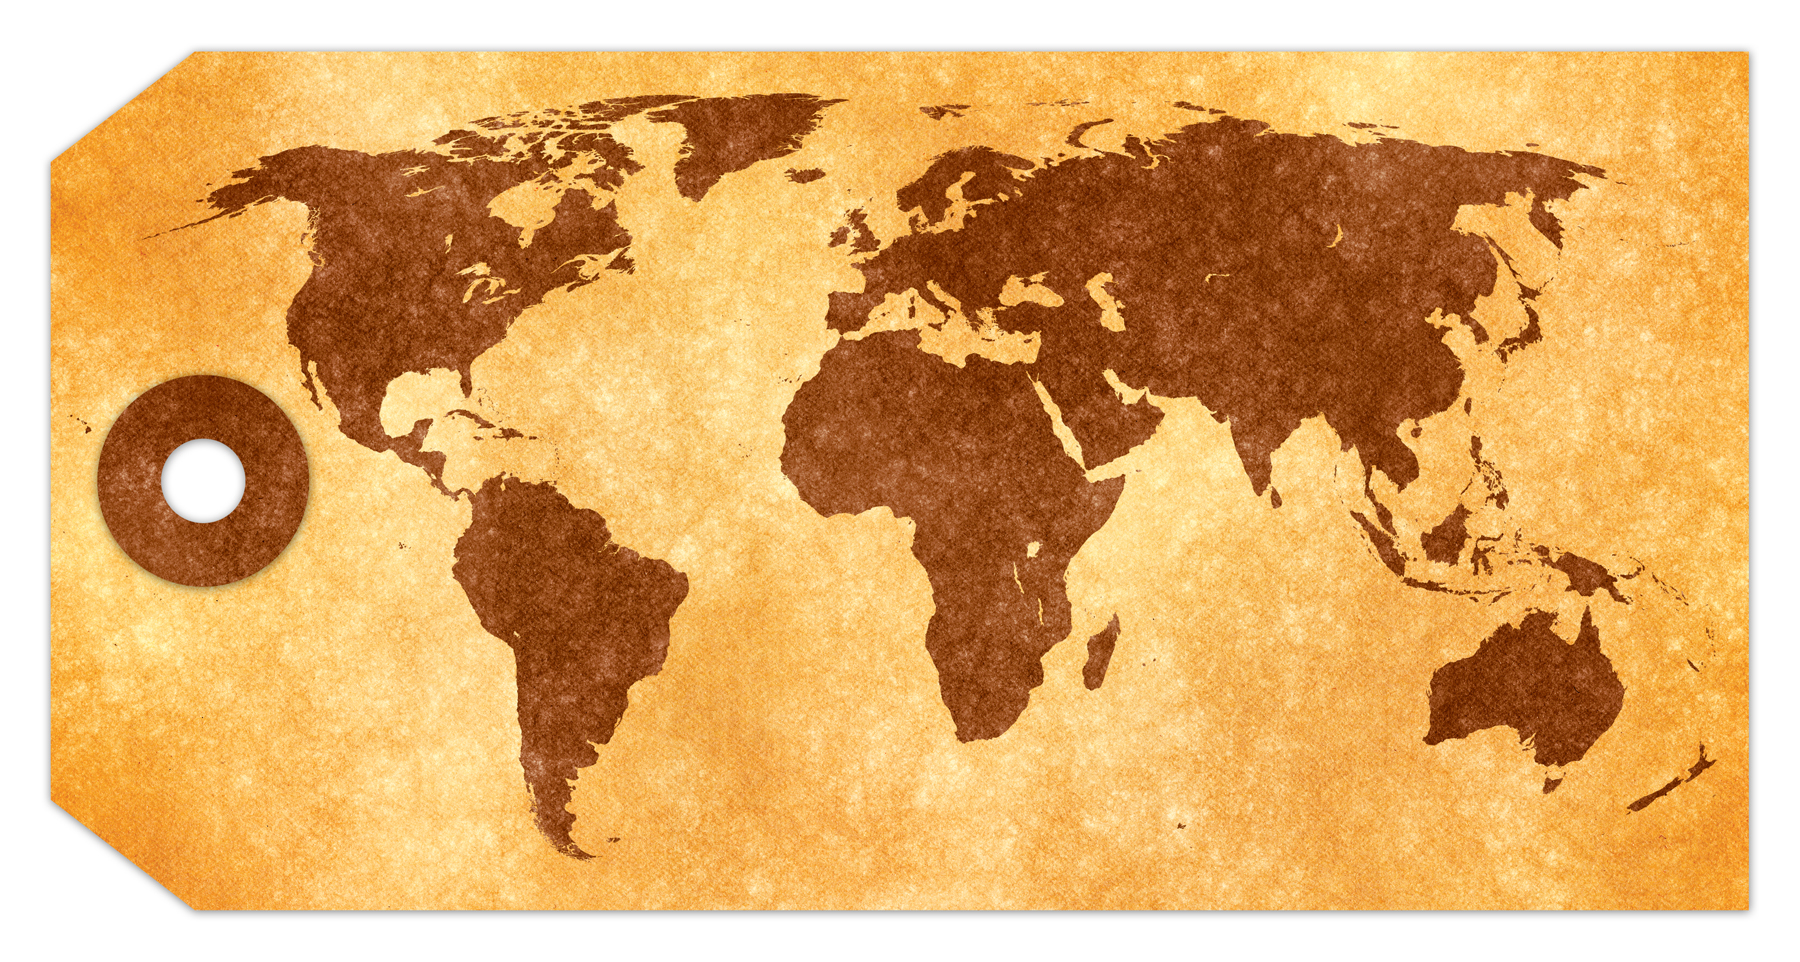 Free photo grunge tag world map paper parchment pacific grunge tag world map paper parchment pacific old hq photo gumiabroncs Image collections